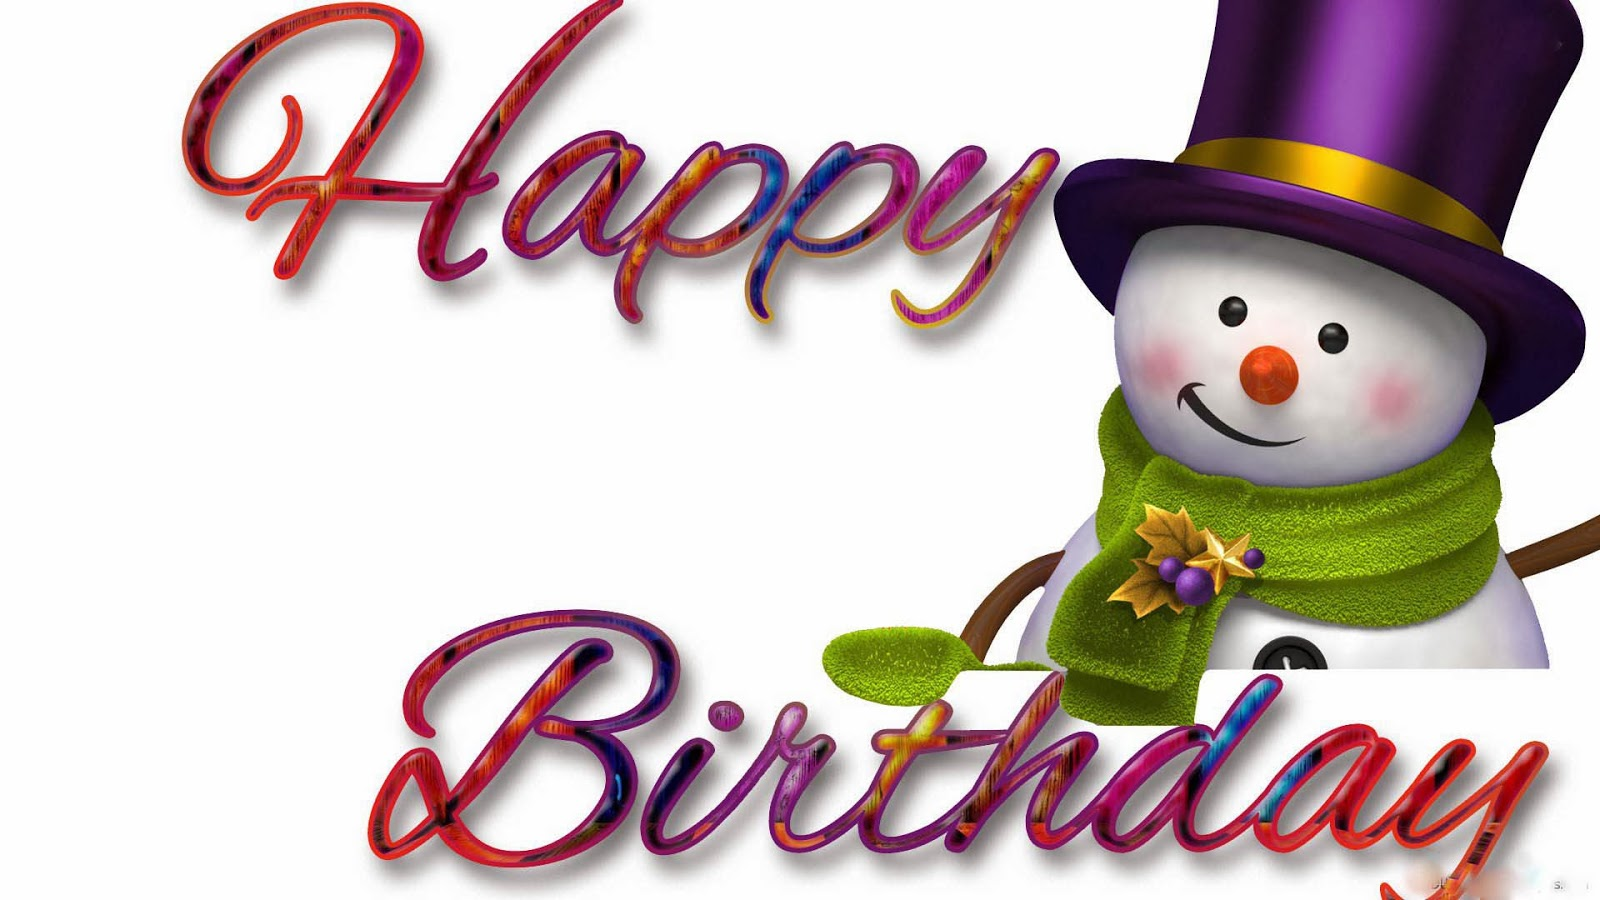 Happy Birthday Wallpaper Download Unique Wallpapers 1600x900